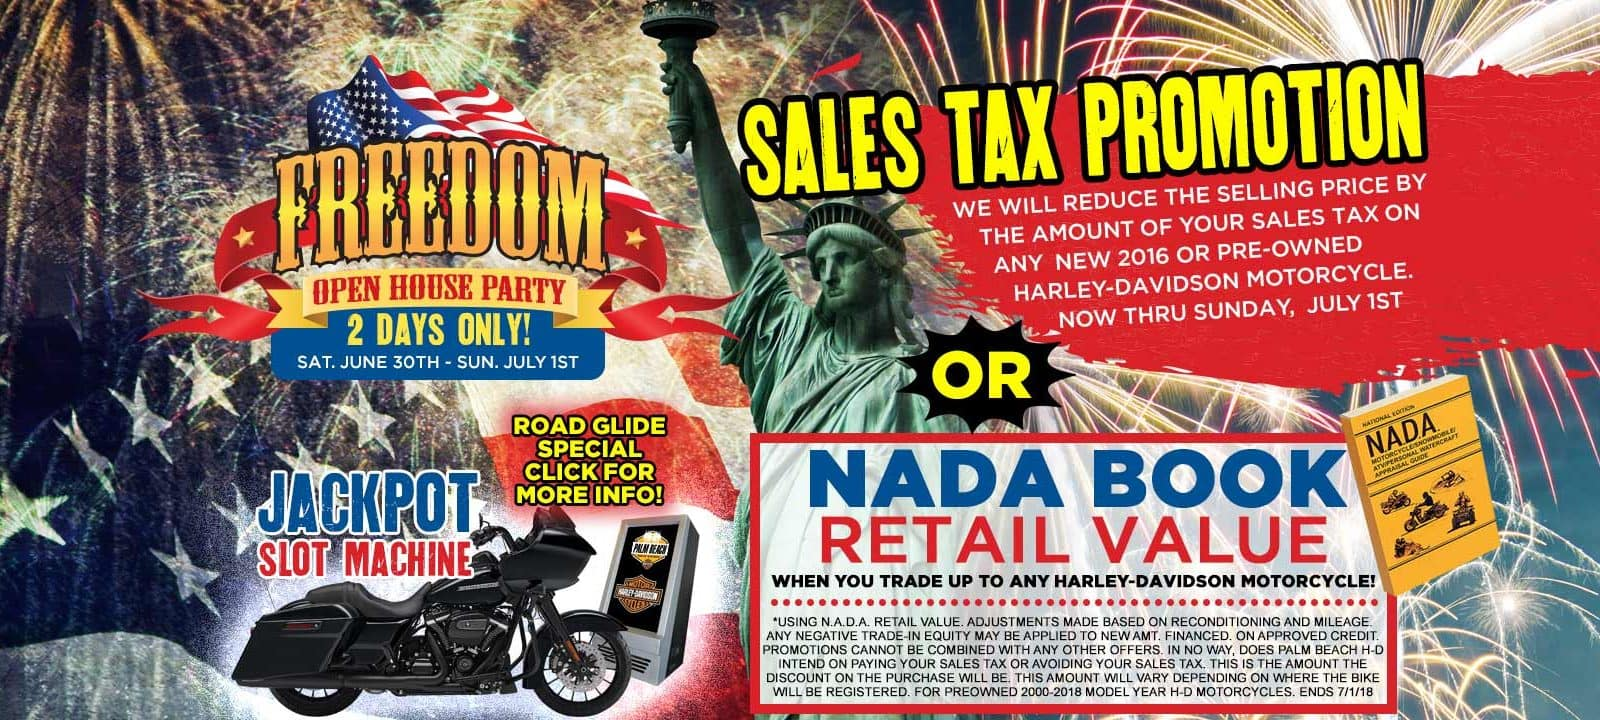 20180625-PBHD-1800x720-Freedom-Open-House-Sales-Tax-or-Retail-Trade